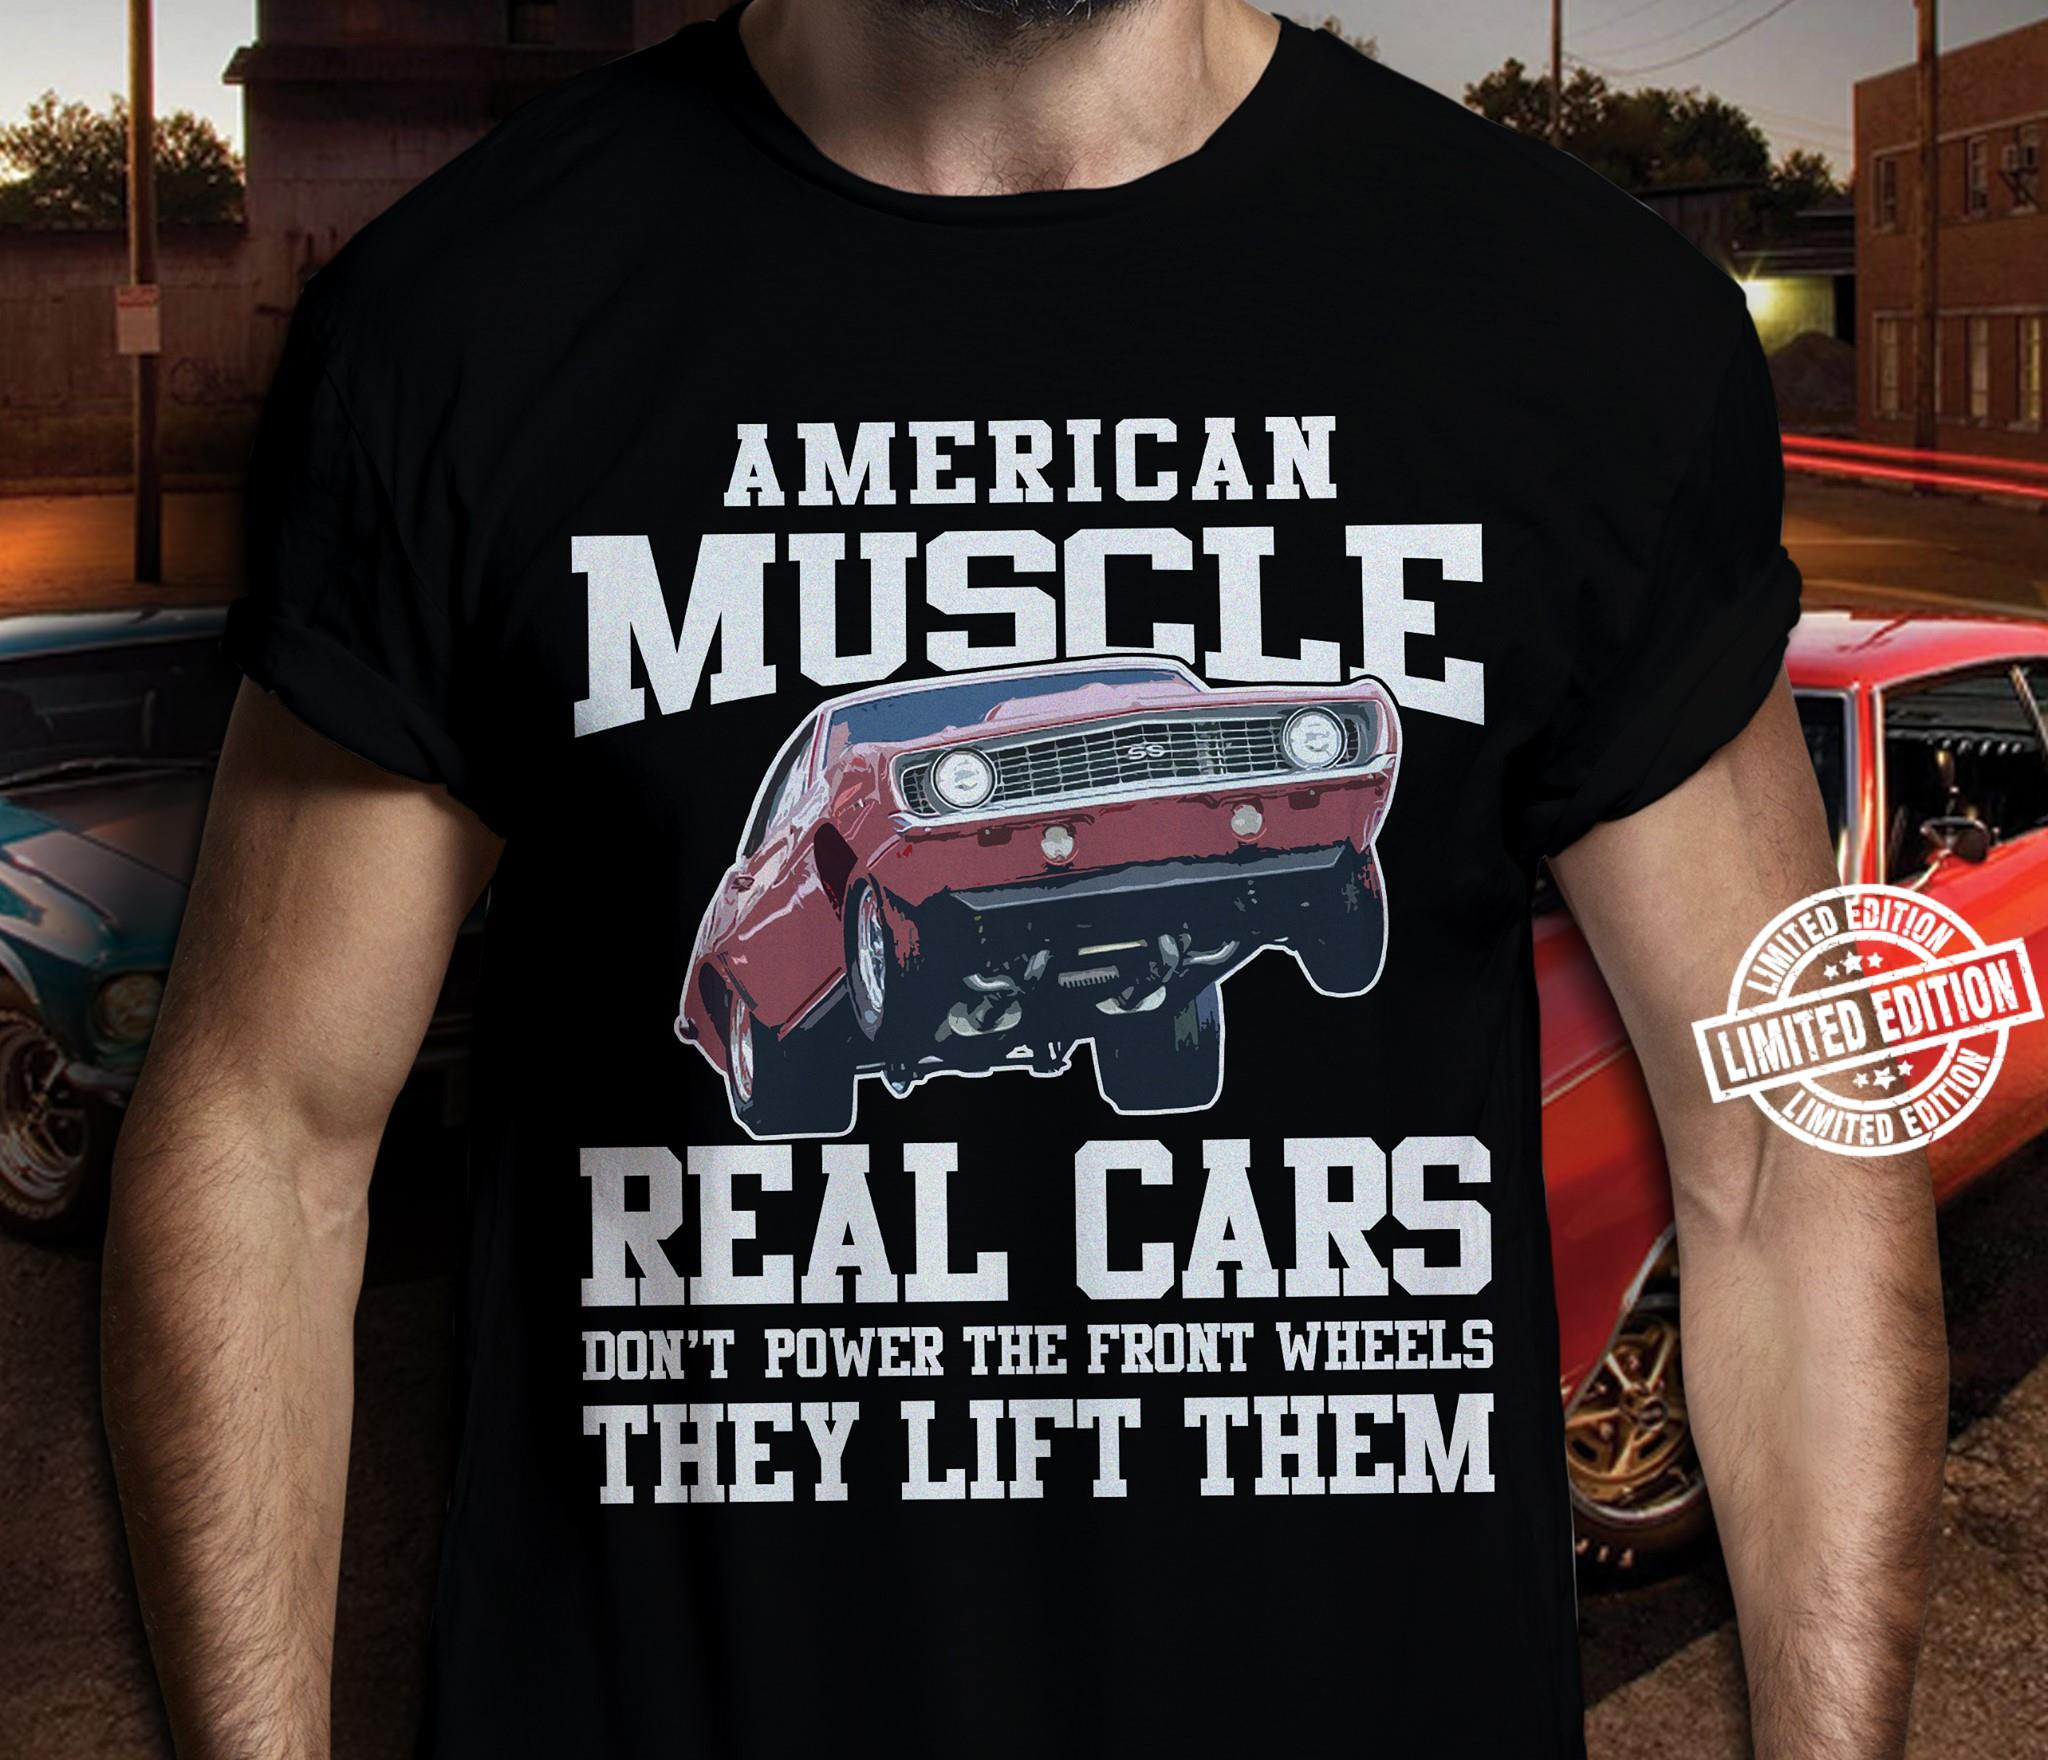 American muscle real cars shirt